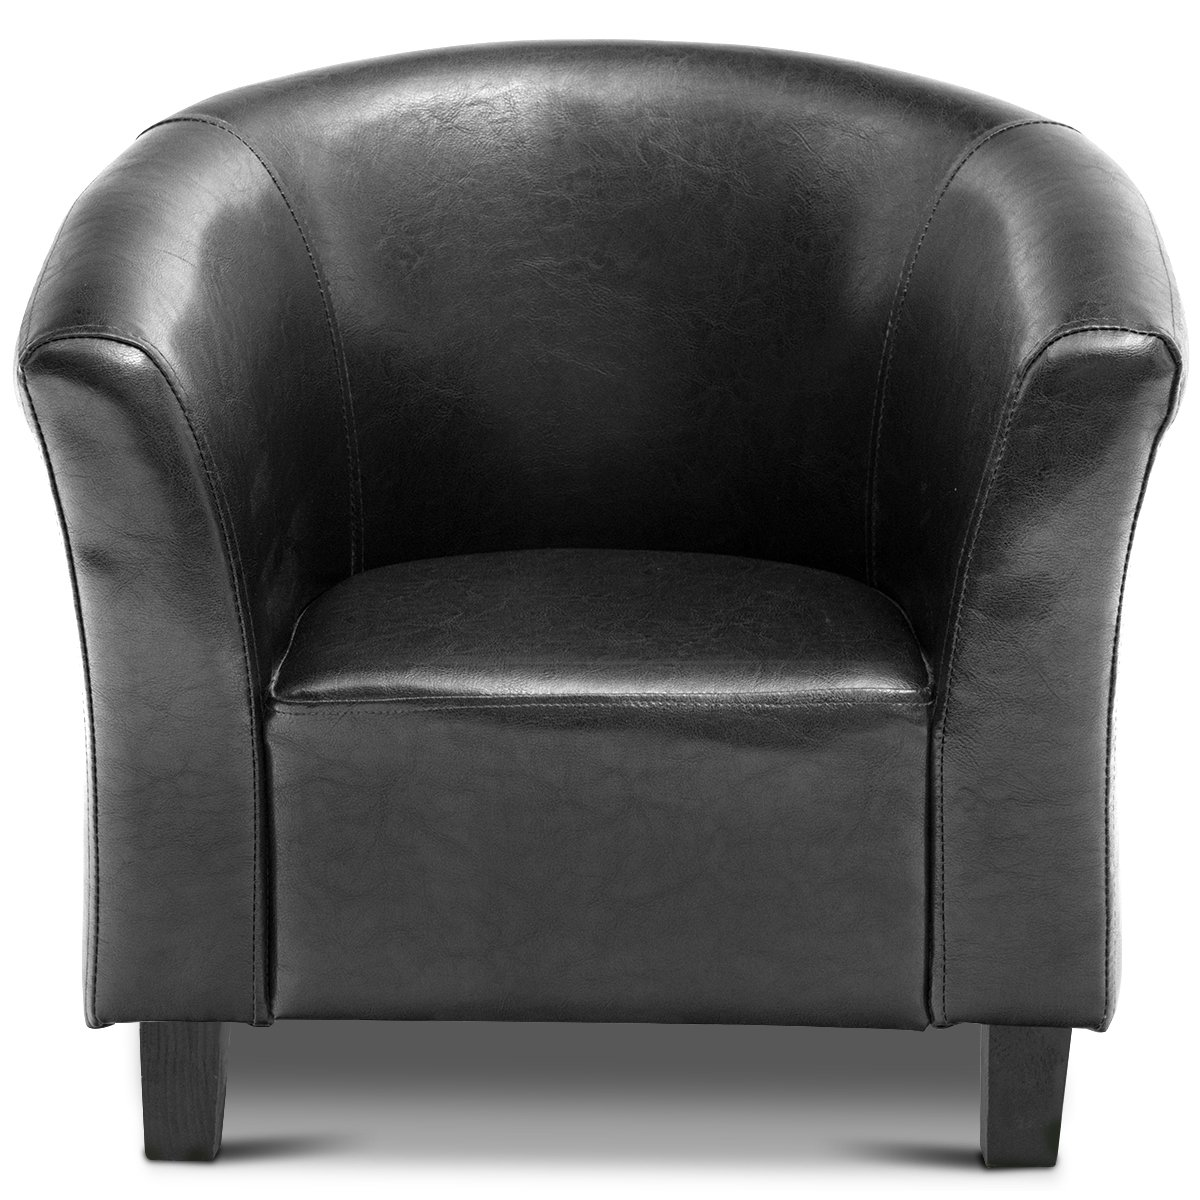 Costzon Kids Sofa Tub Chair Couch Children Living Room Toddler Furniture (PU Leather, Black) by Costzon (Image #1)